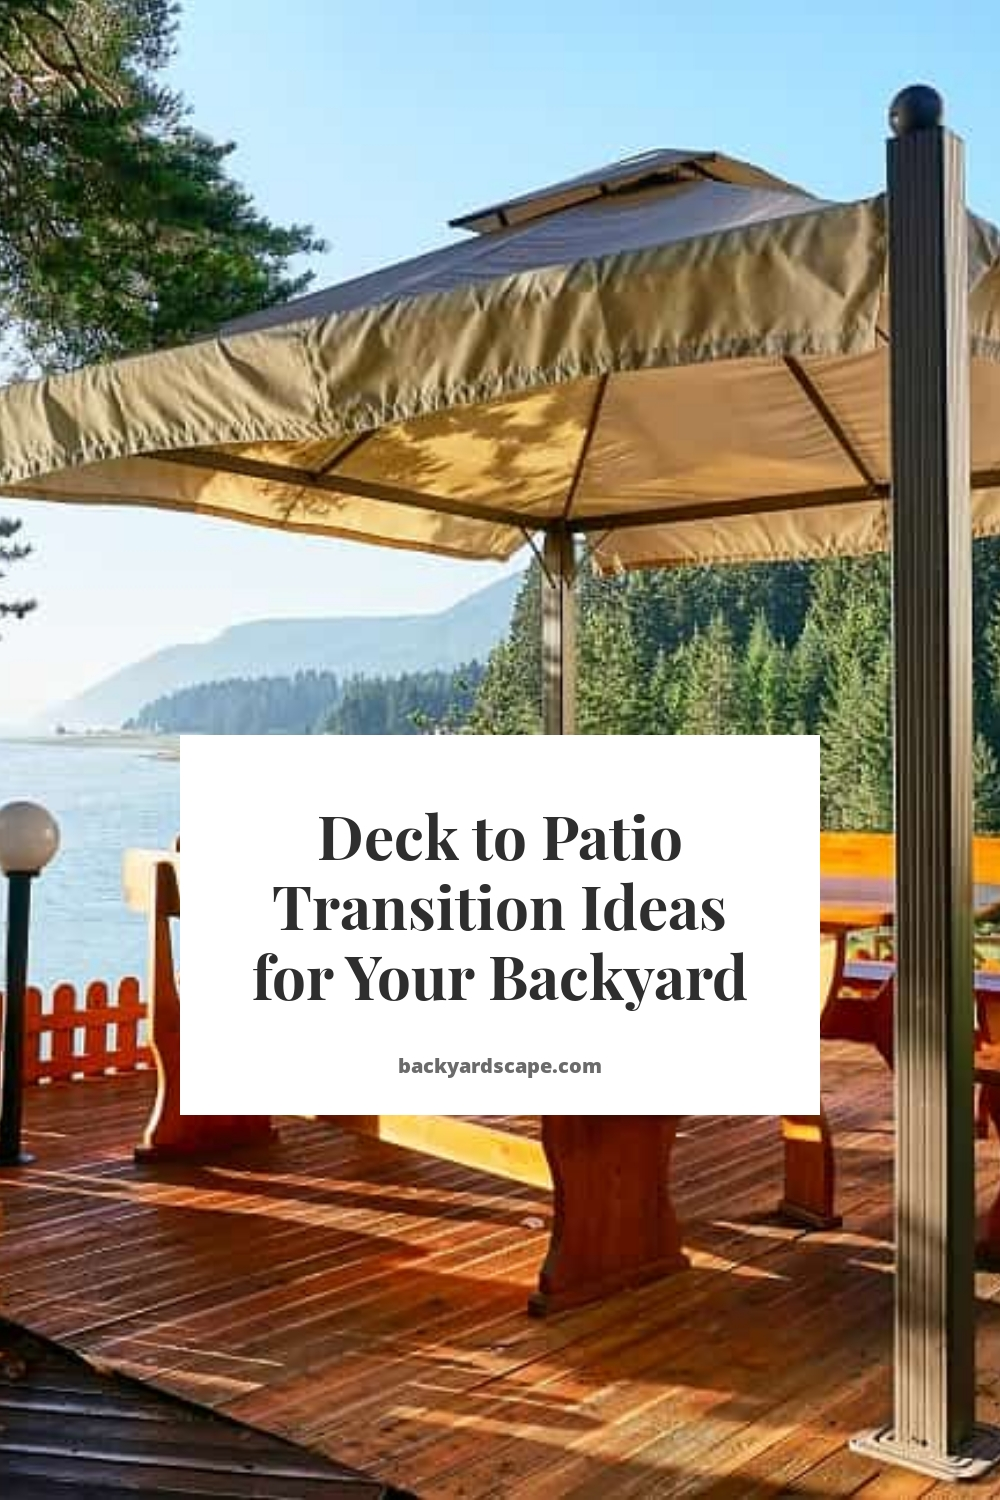 Deck to Patio Transition Ideas for Your Backyard